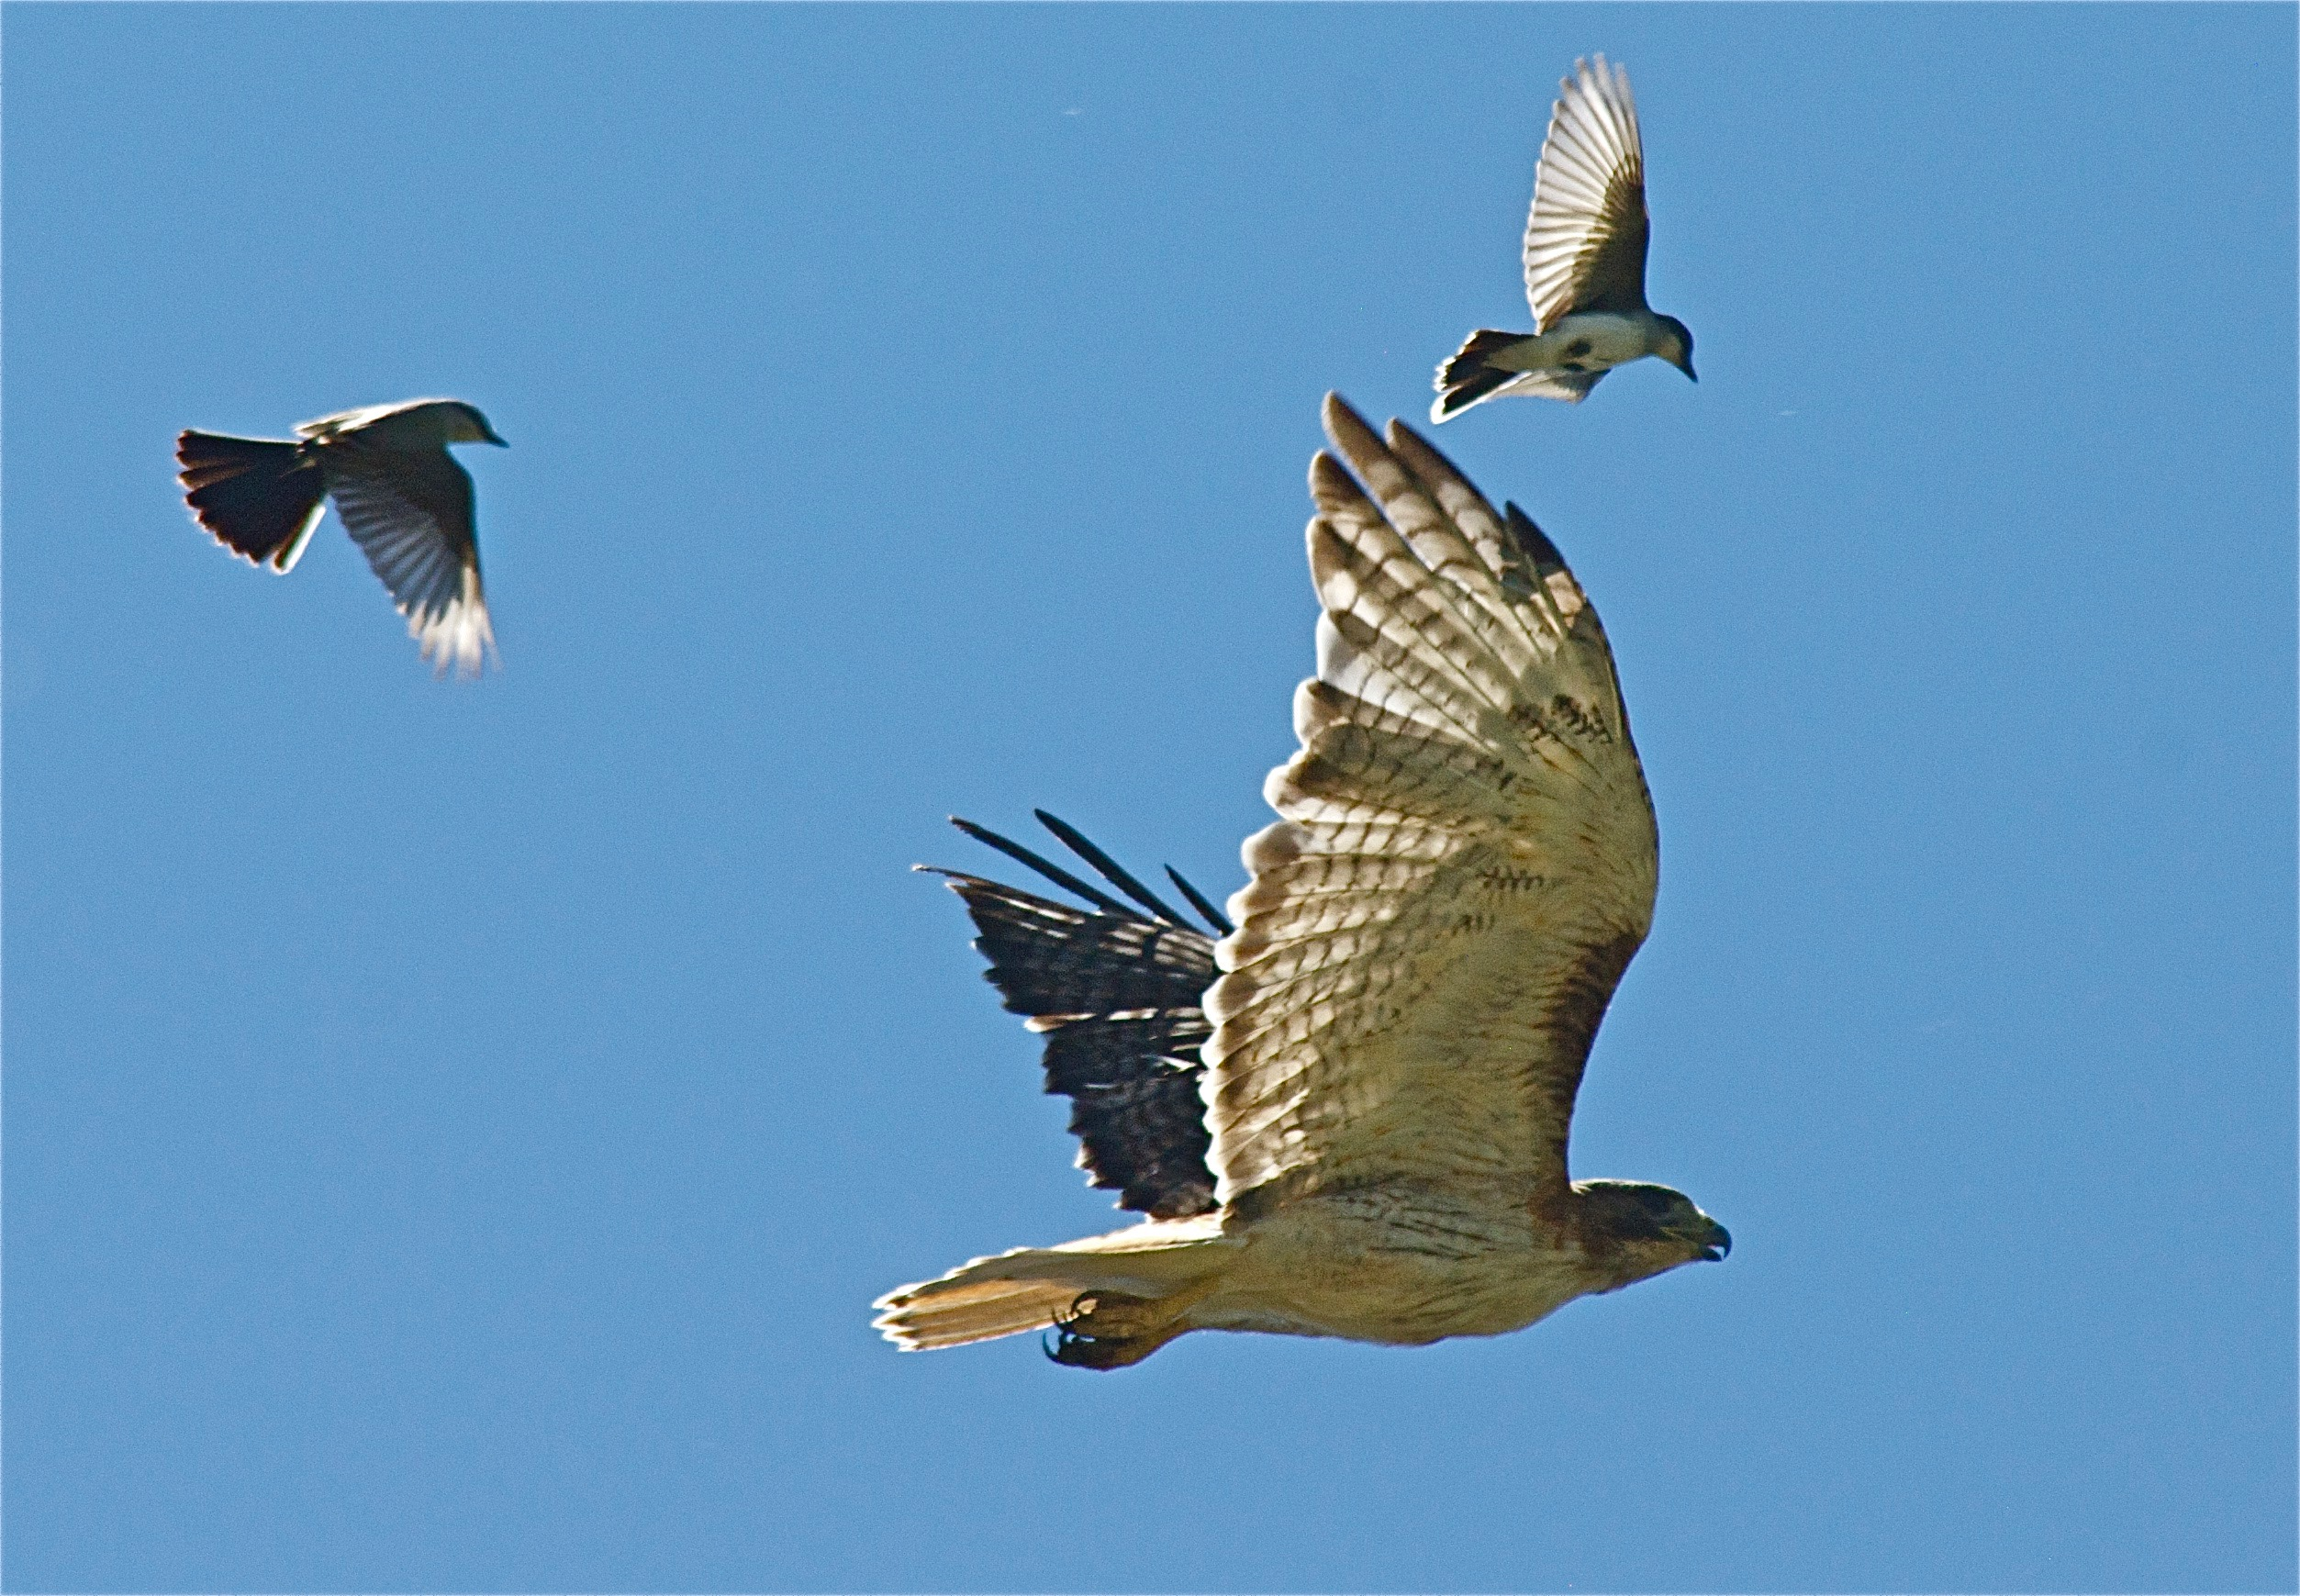 Red-Tailed Hawk pursued by Western Kingbirds